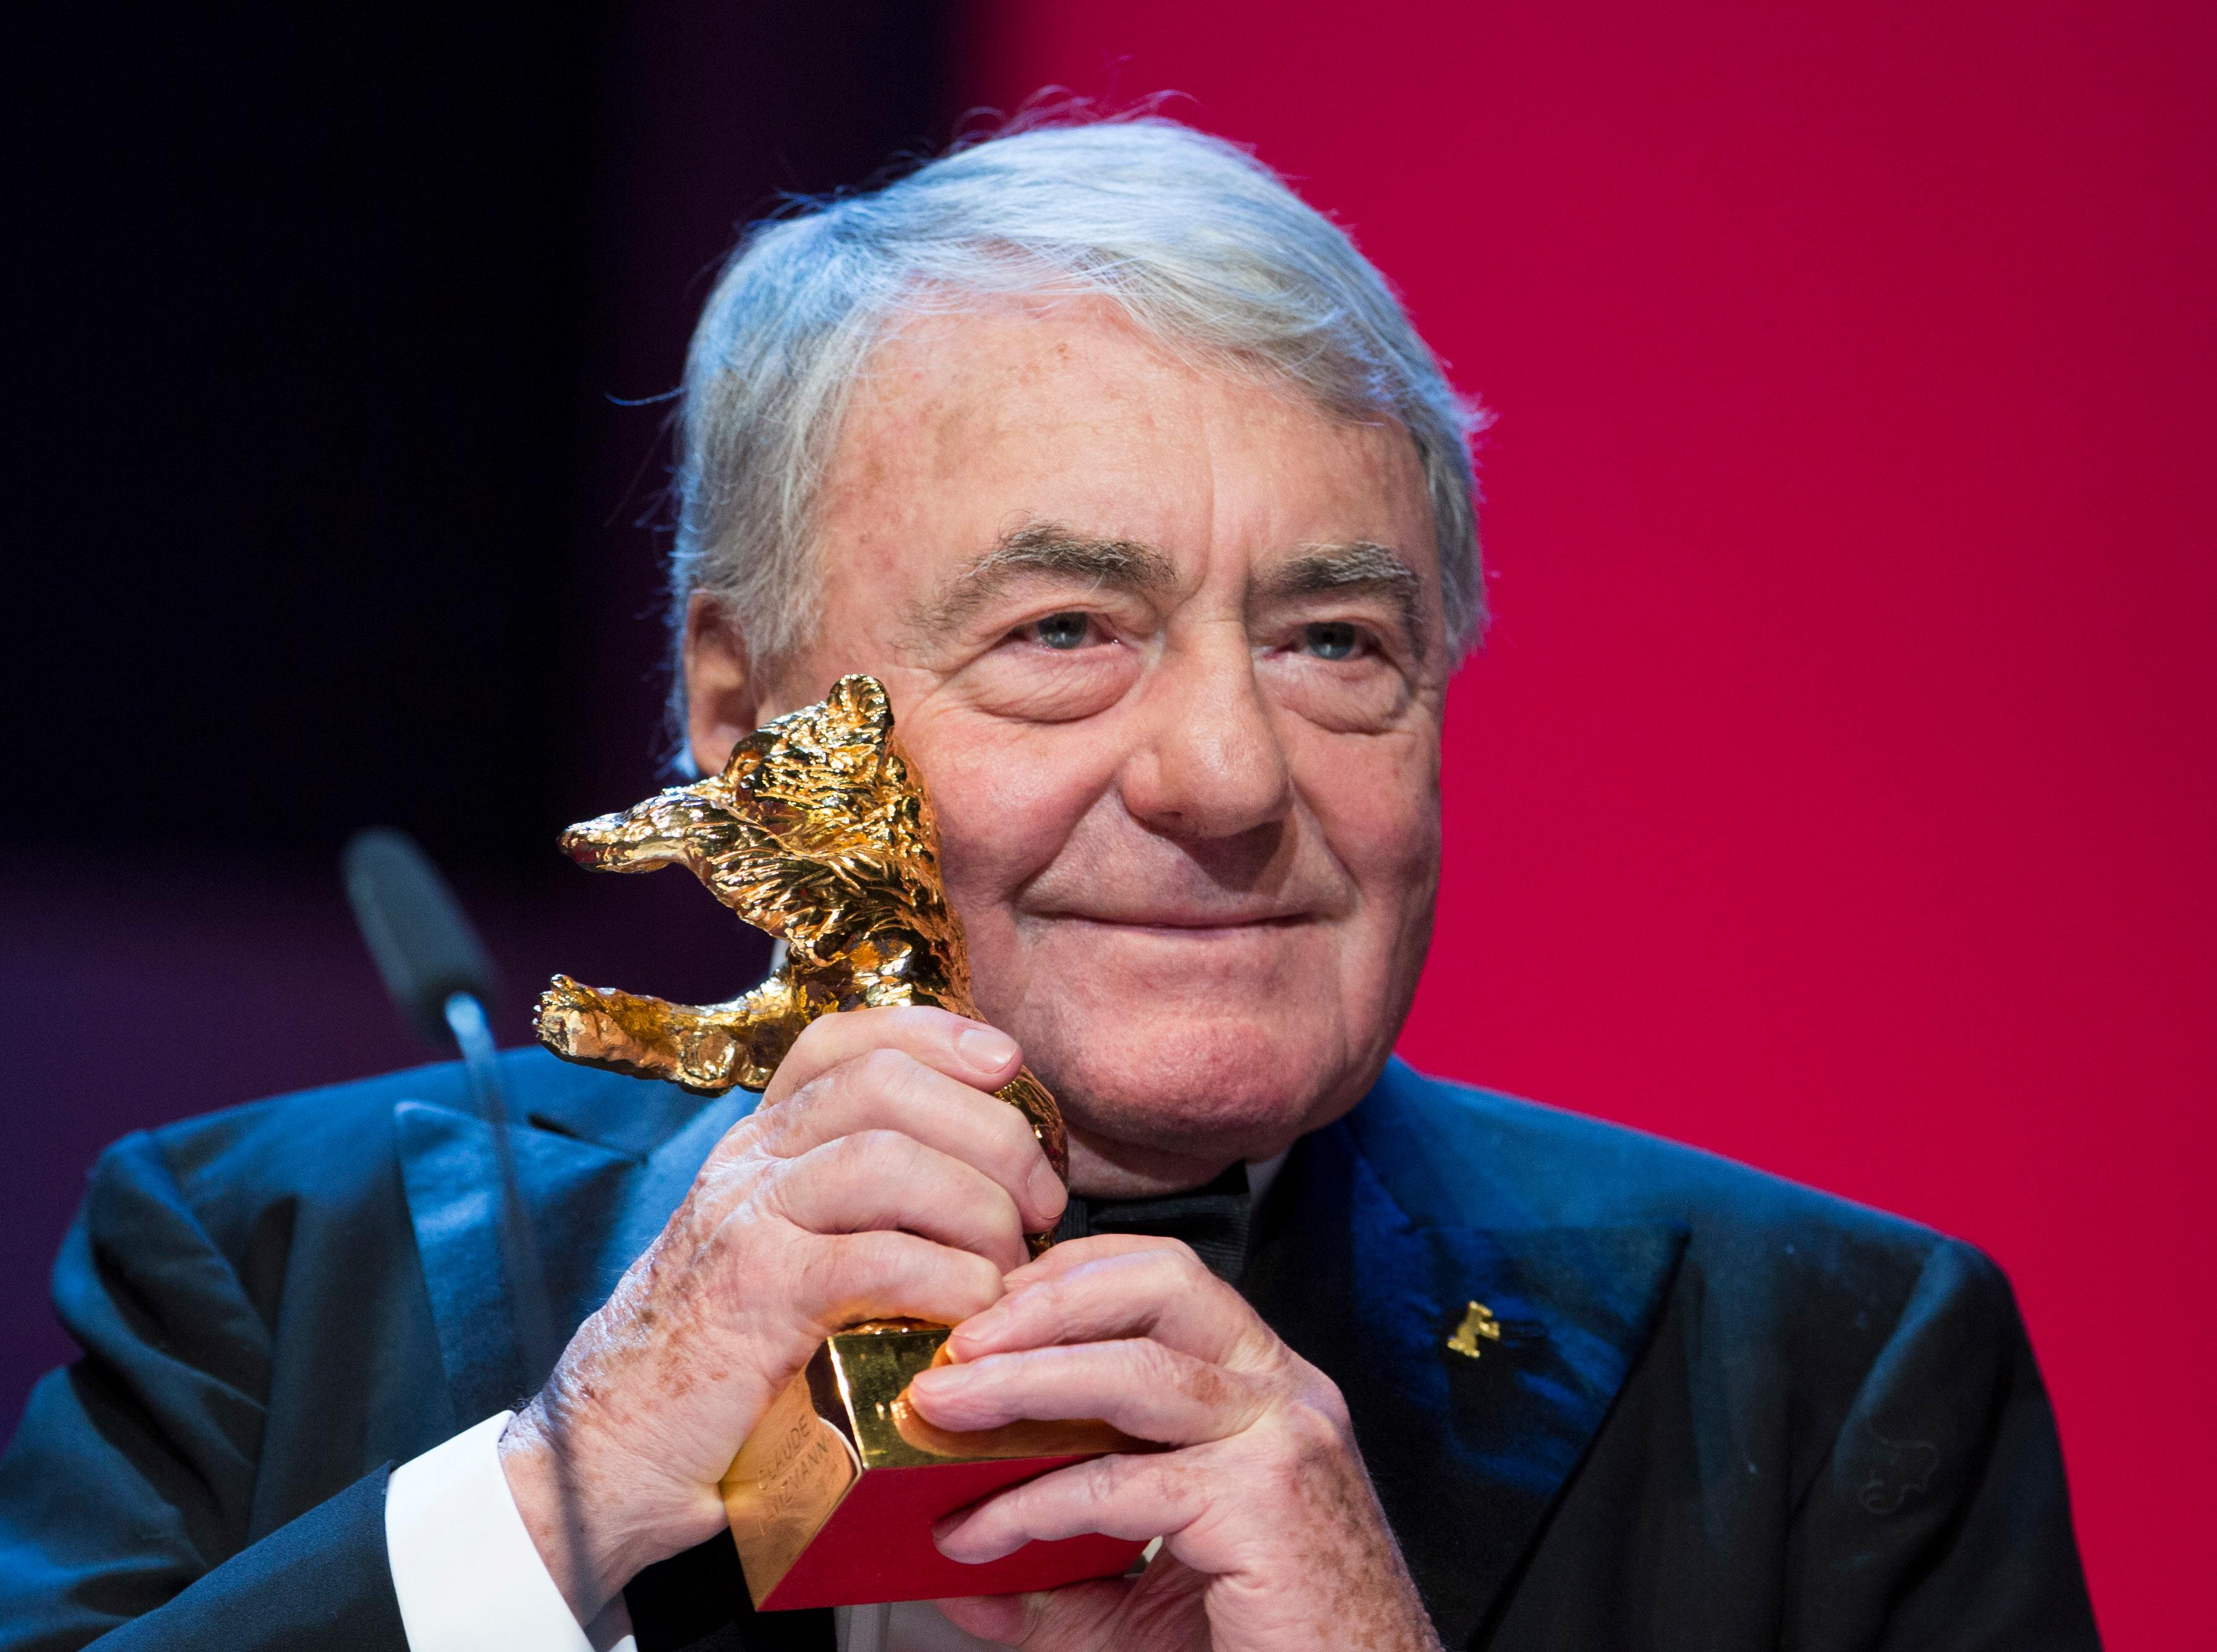 FILE - In this Feb.14, 2013 file photo, French film director Claude Lanzmann holds the Honorary Golden Bear at the 63rd edition of the Berlinale, International Film Festival in Berlin, Germany. Lanzmann, director of the epic movie 'Shoah,' has died at age 92 his publisher said Thursday, July 5, 2018. (AP Photo/Gero Breloer, File)